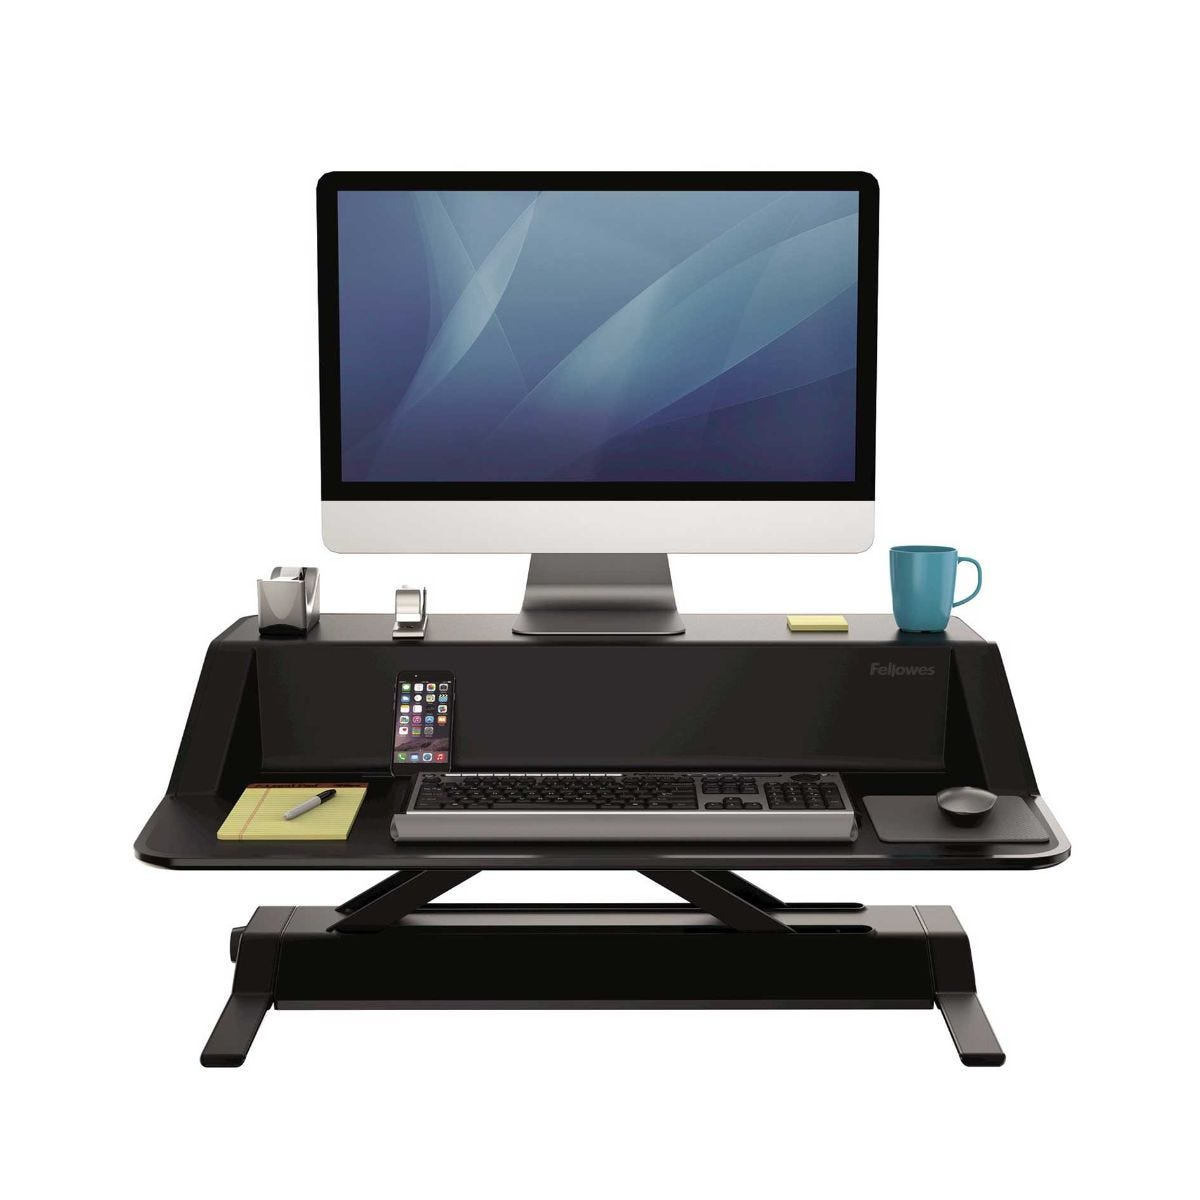 Image of Fellowes Lotus Sit-Stand Workstation, Black